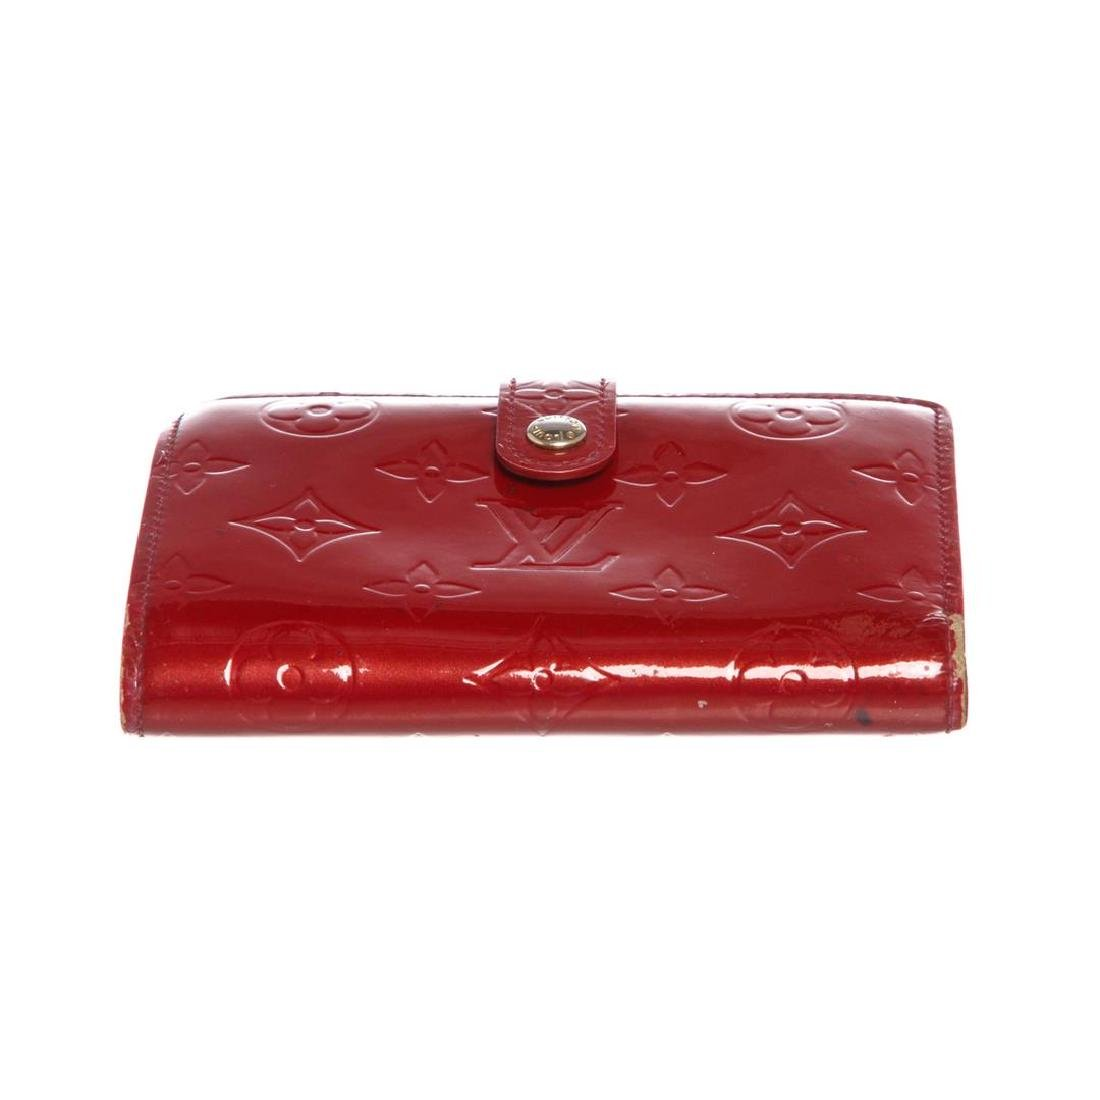 Louis Vuitton Red Vernis Monogram French Wallet - 4